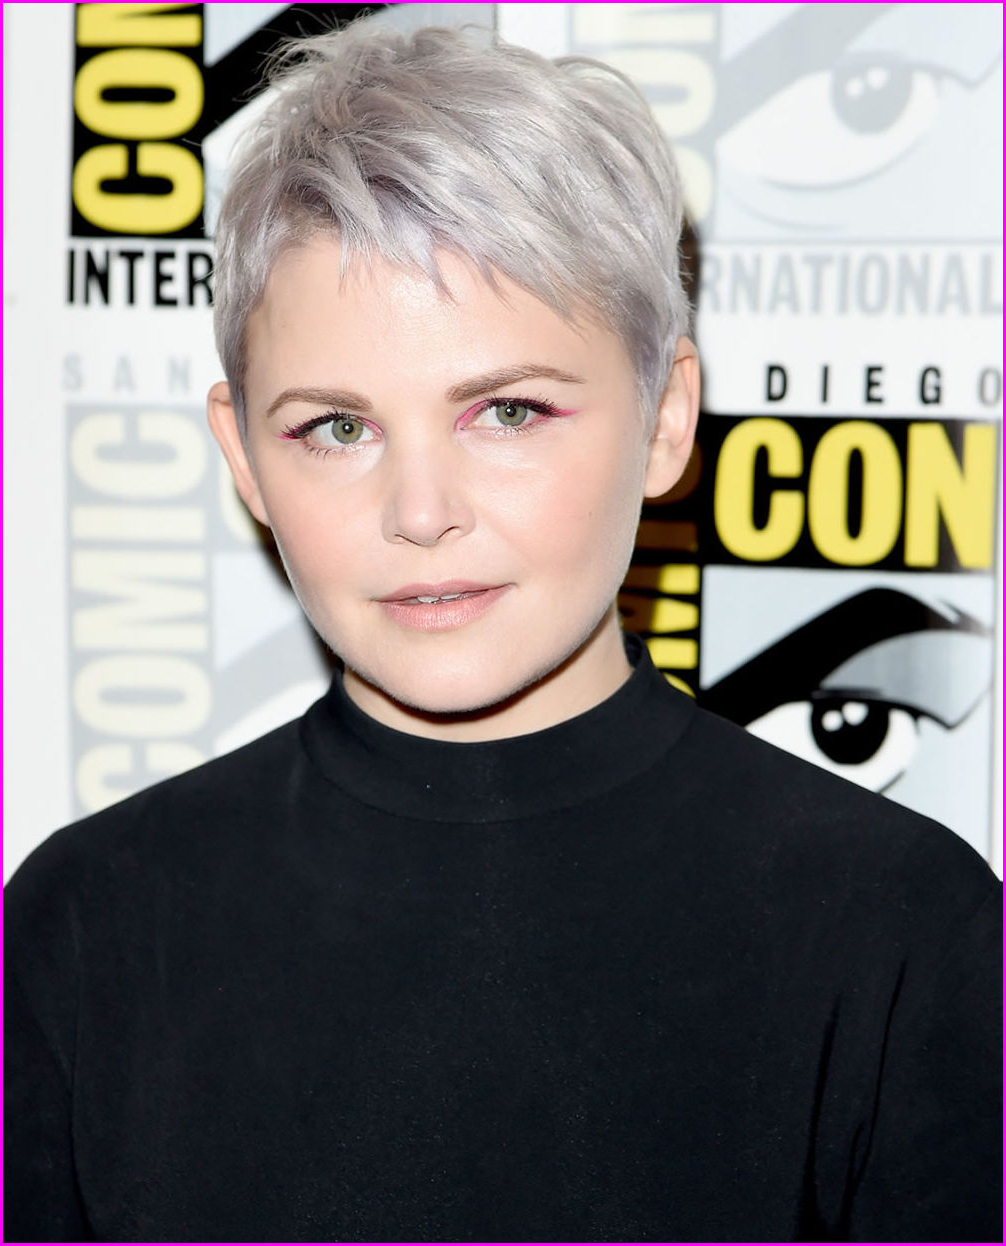 2017 Gray Short Pixie Cuts For Short Pixie Cuts For Grey Hair – Short Pixie Cuts (View 18 of 20)